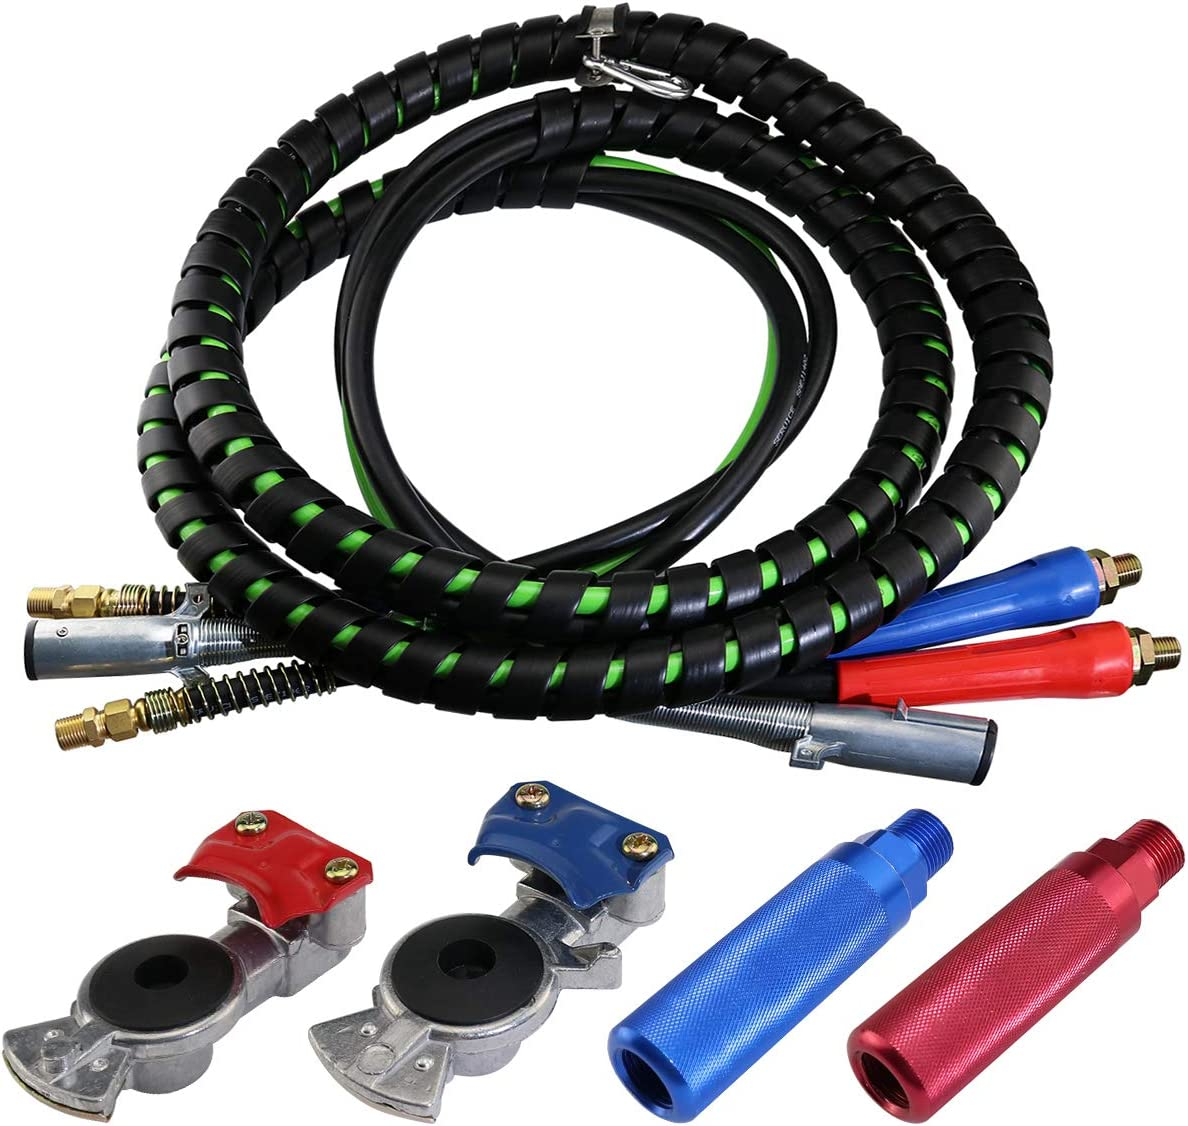 Road King Truck Parts ROAD KING HEAVY DUTY 20 DOUBLE TENDER SPRING KIT WITH 3 HOSE HOLDER RK-20020T